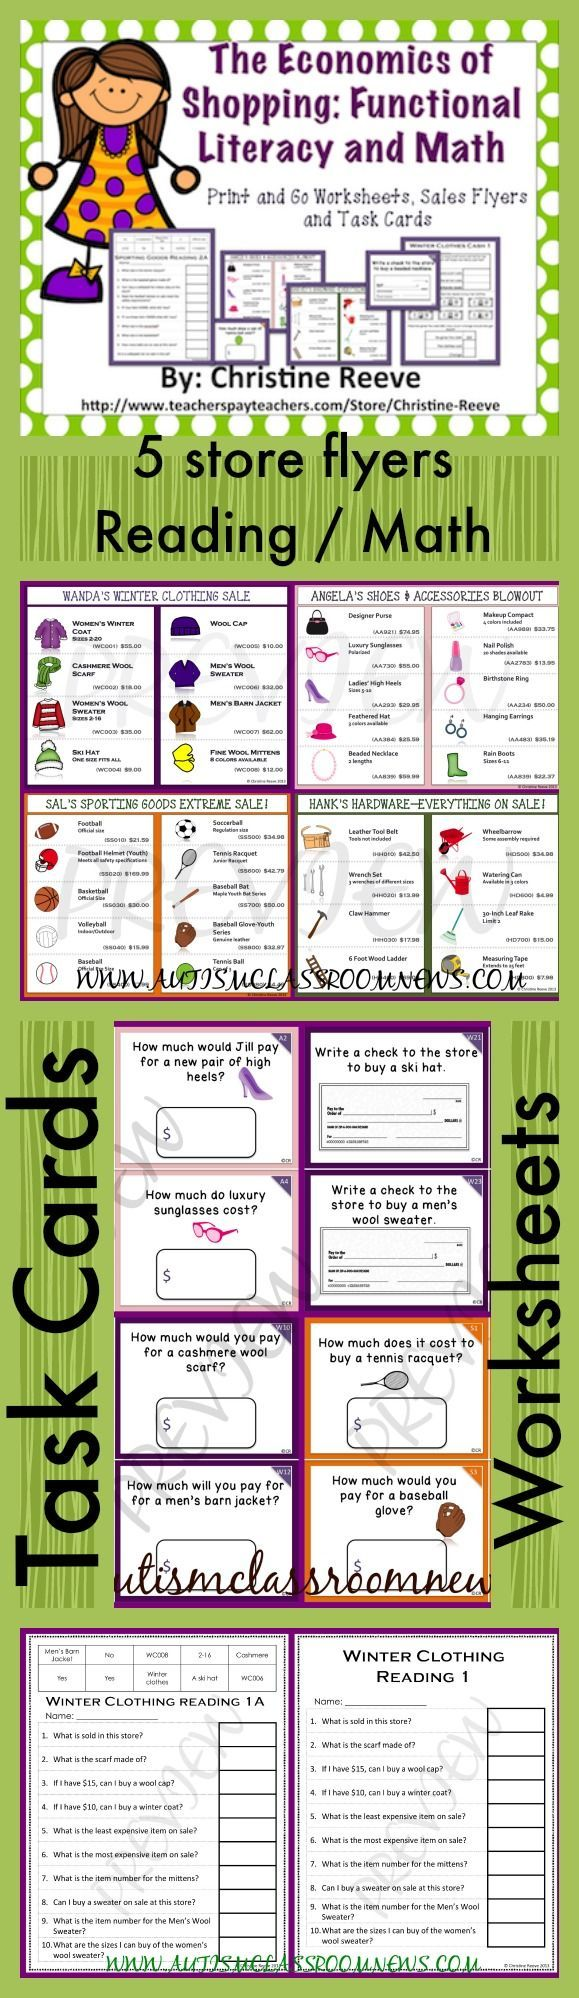 Free Worksheet Functional Reading Worksheets 17 best ideas about functional literacy on pinterest life skills economics of shopping and math special ed autism